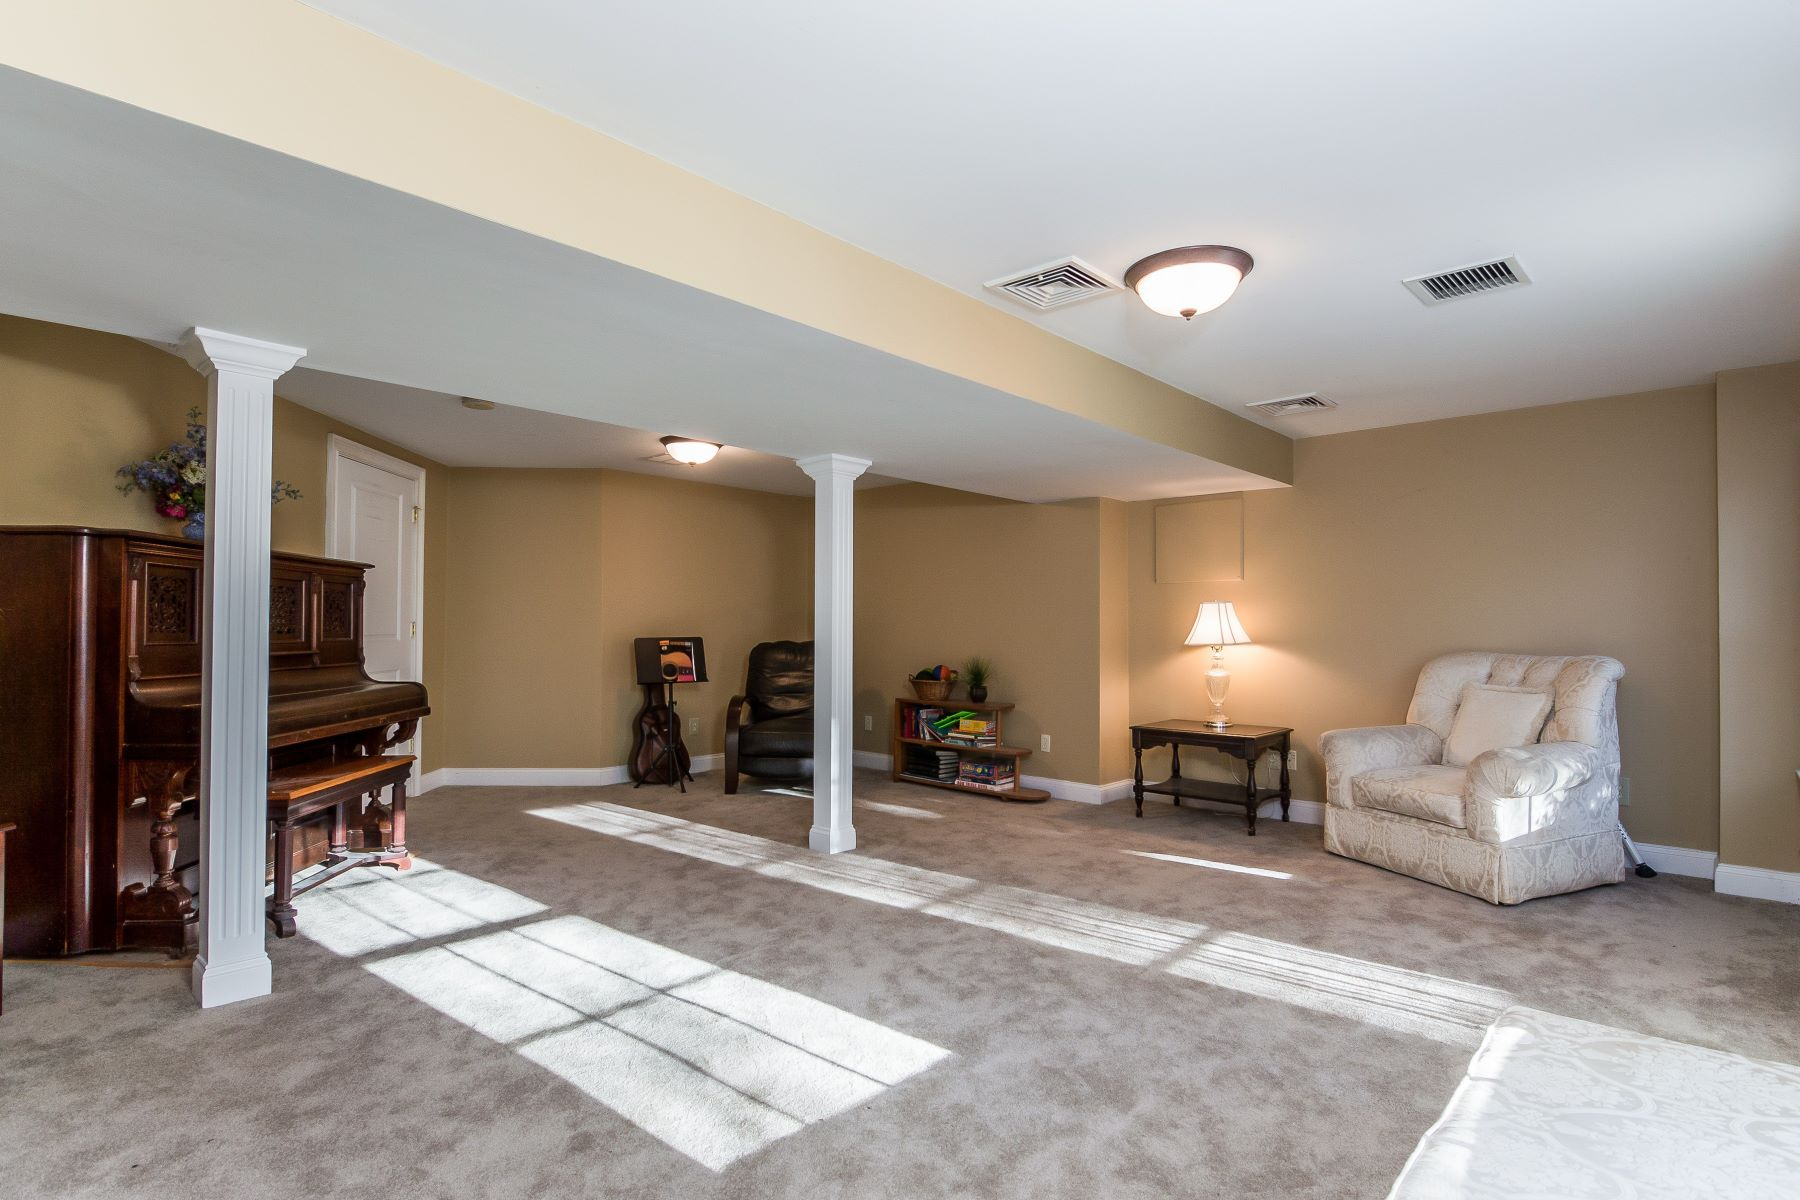 Additional photo for property listing at 121 Crest Dr, Cranston, RI 121 Crest Dr Cranston, Rhode Island 02921 United States